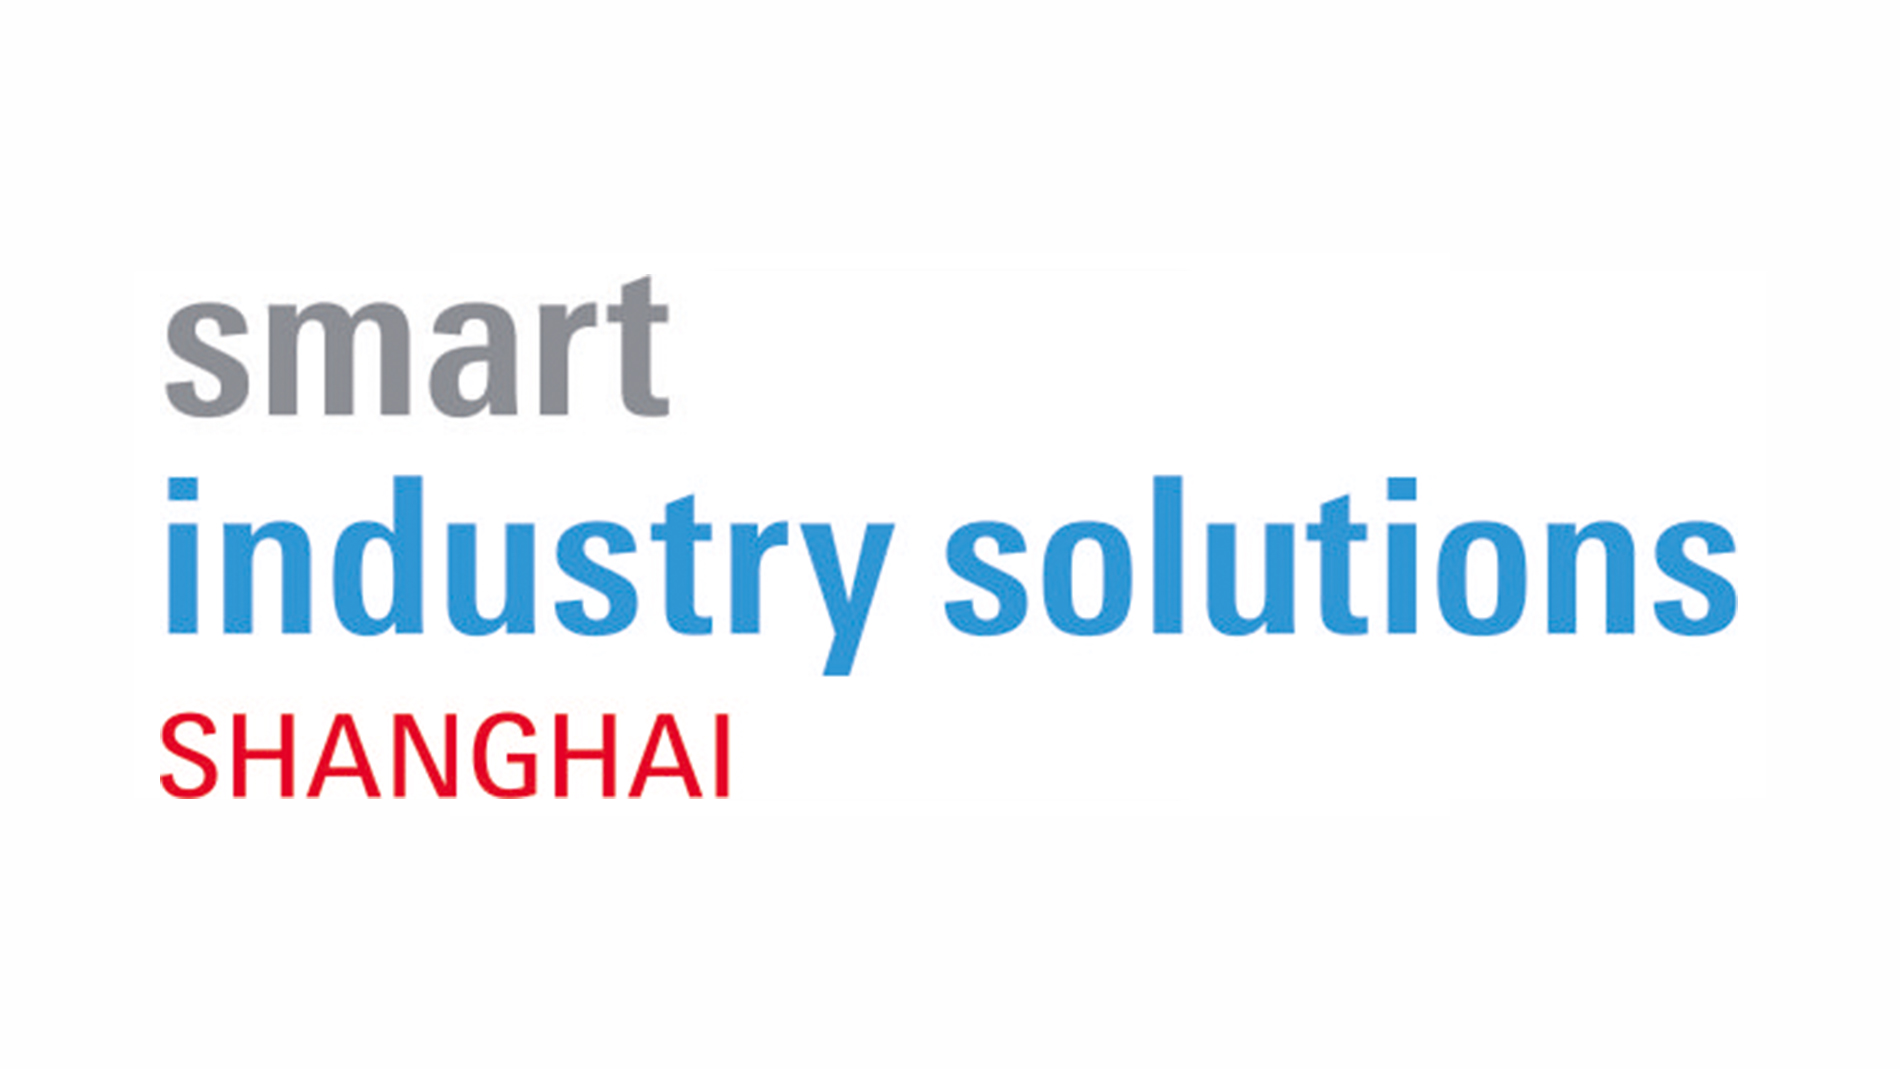 Smart Industry Solutions Shanghai